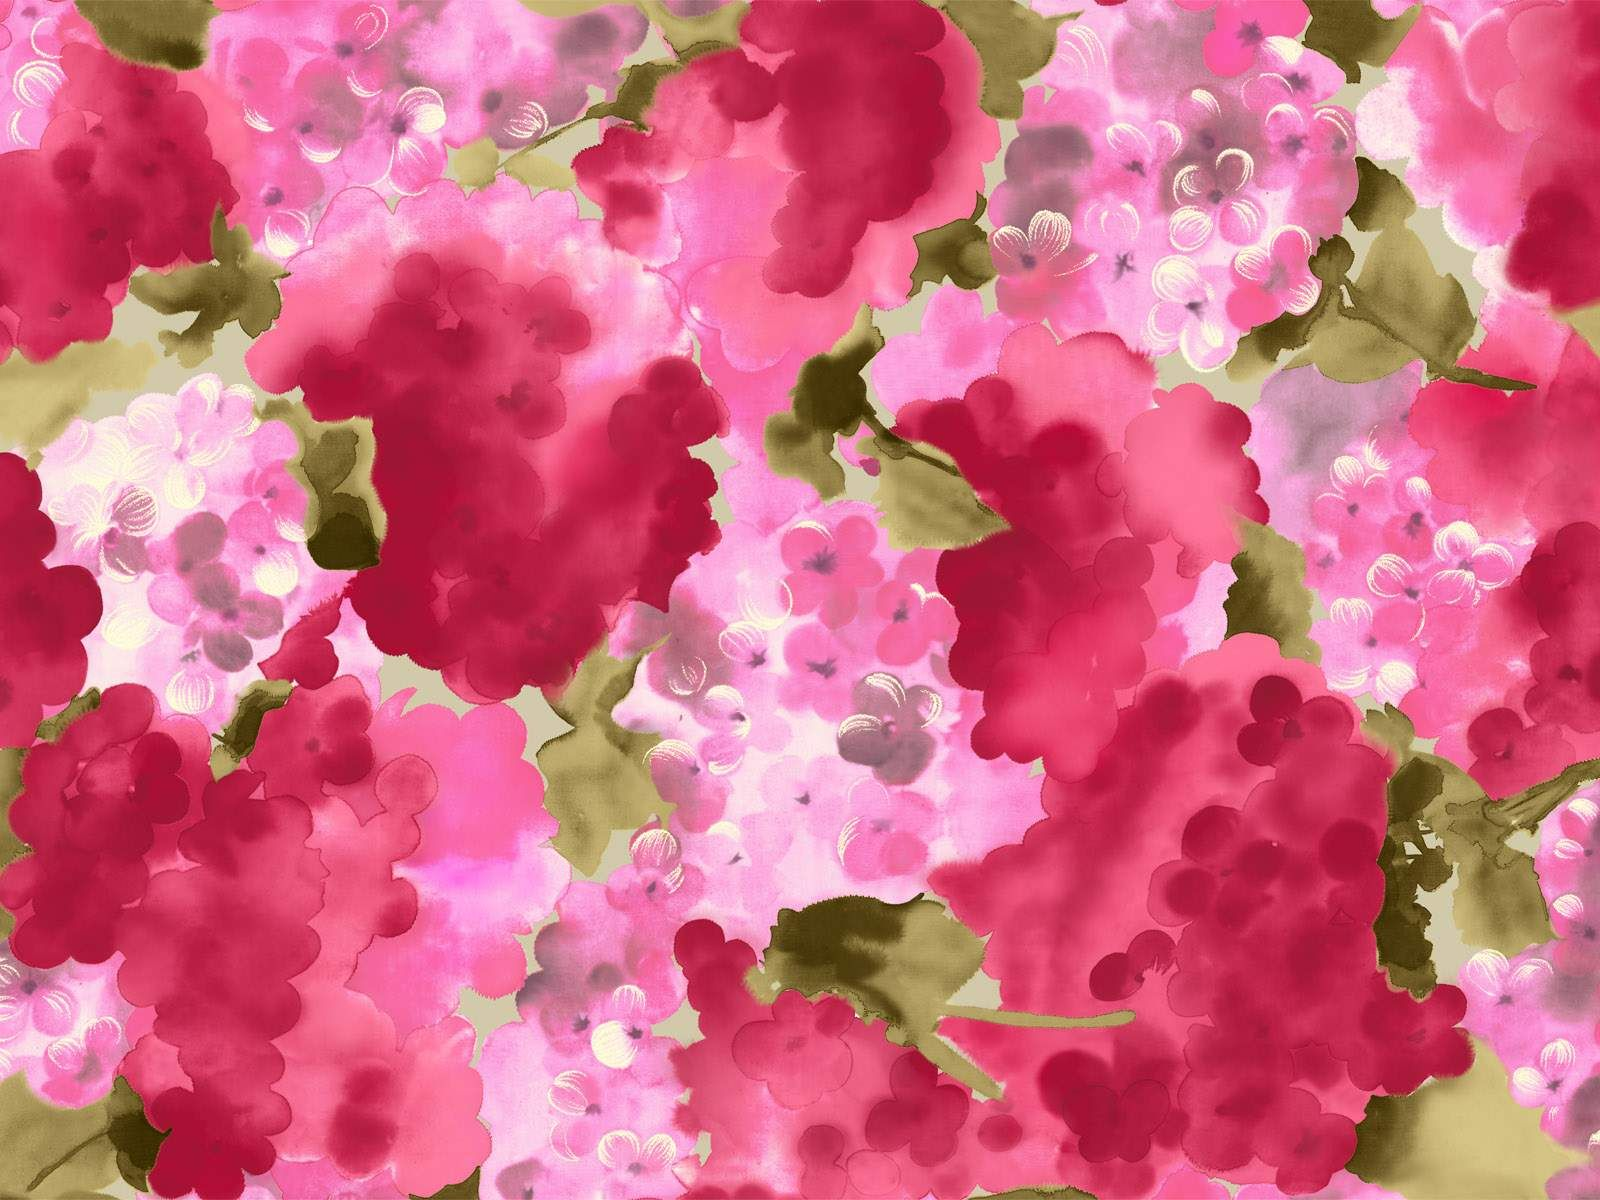 flower painting watercolor wallpaper - photo #5